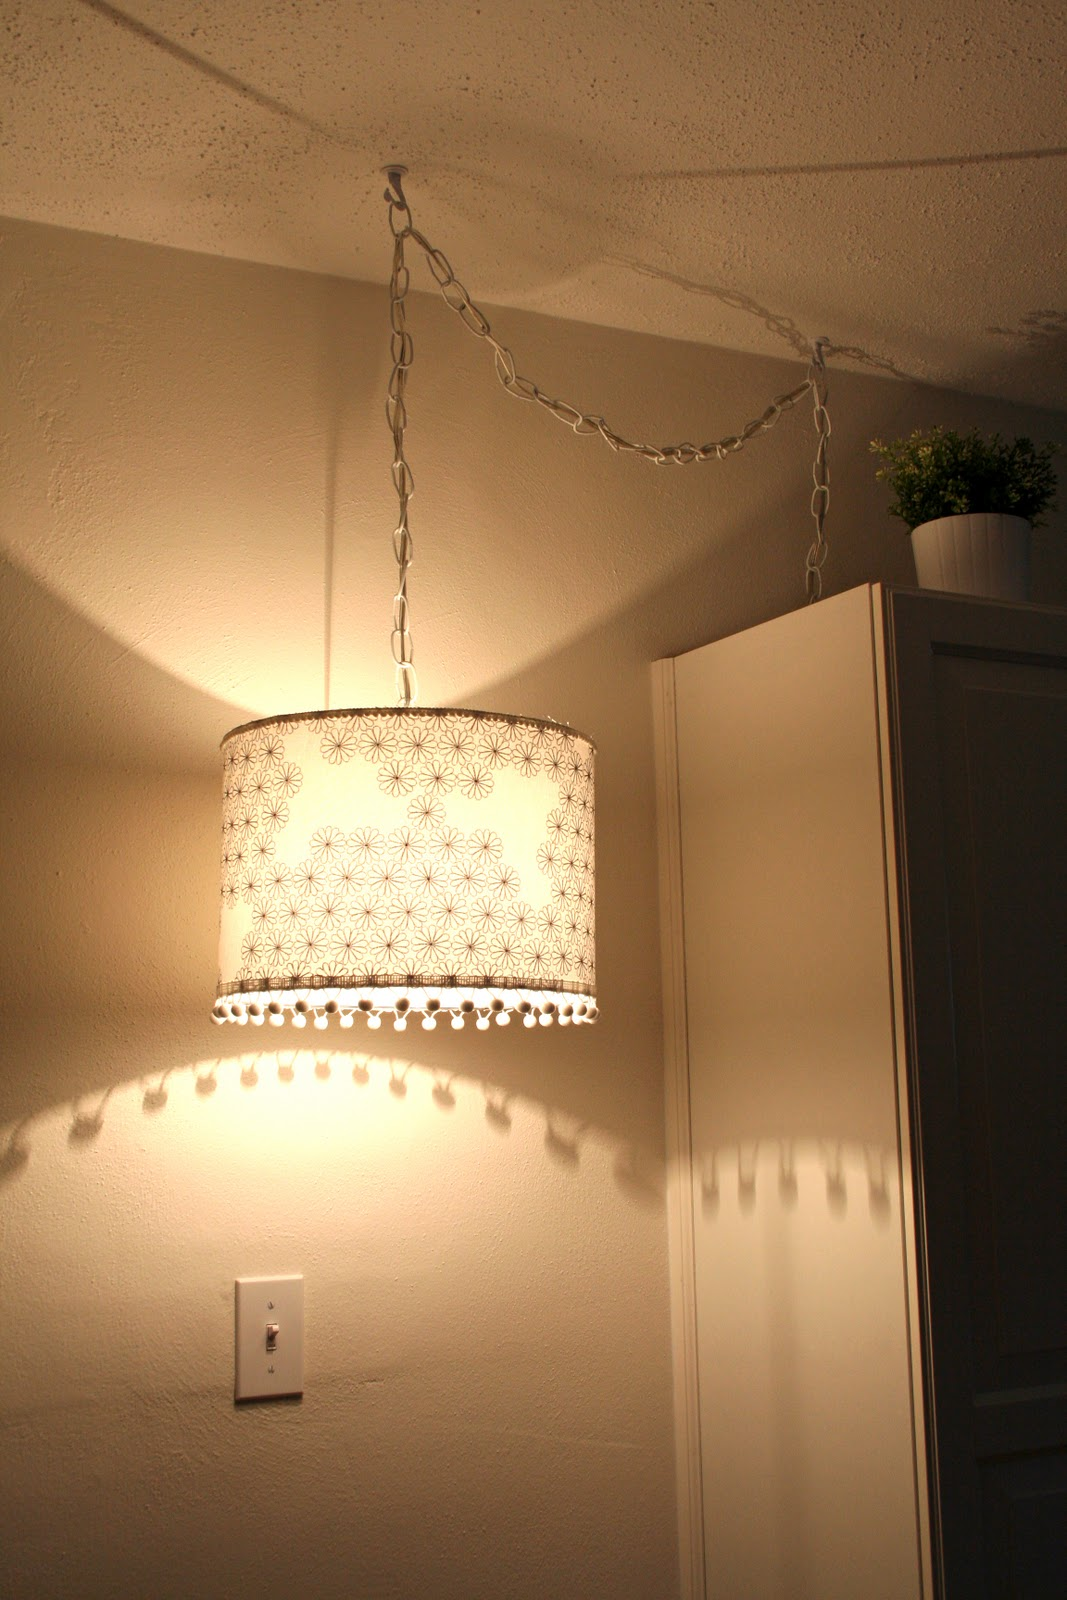 Our Nest of 3: DIY Swag Lamp and Drum Lamp Shade We Made!